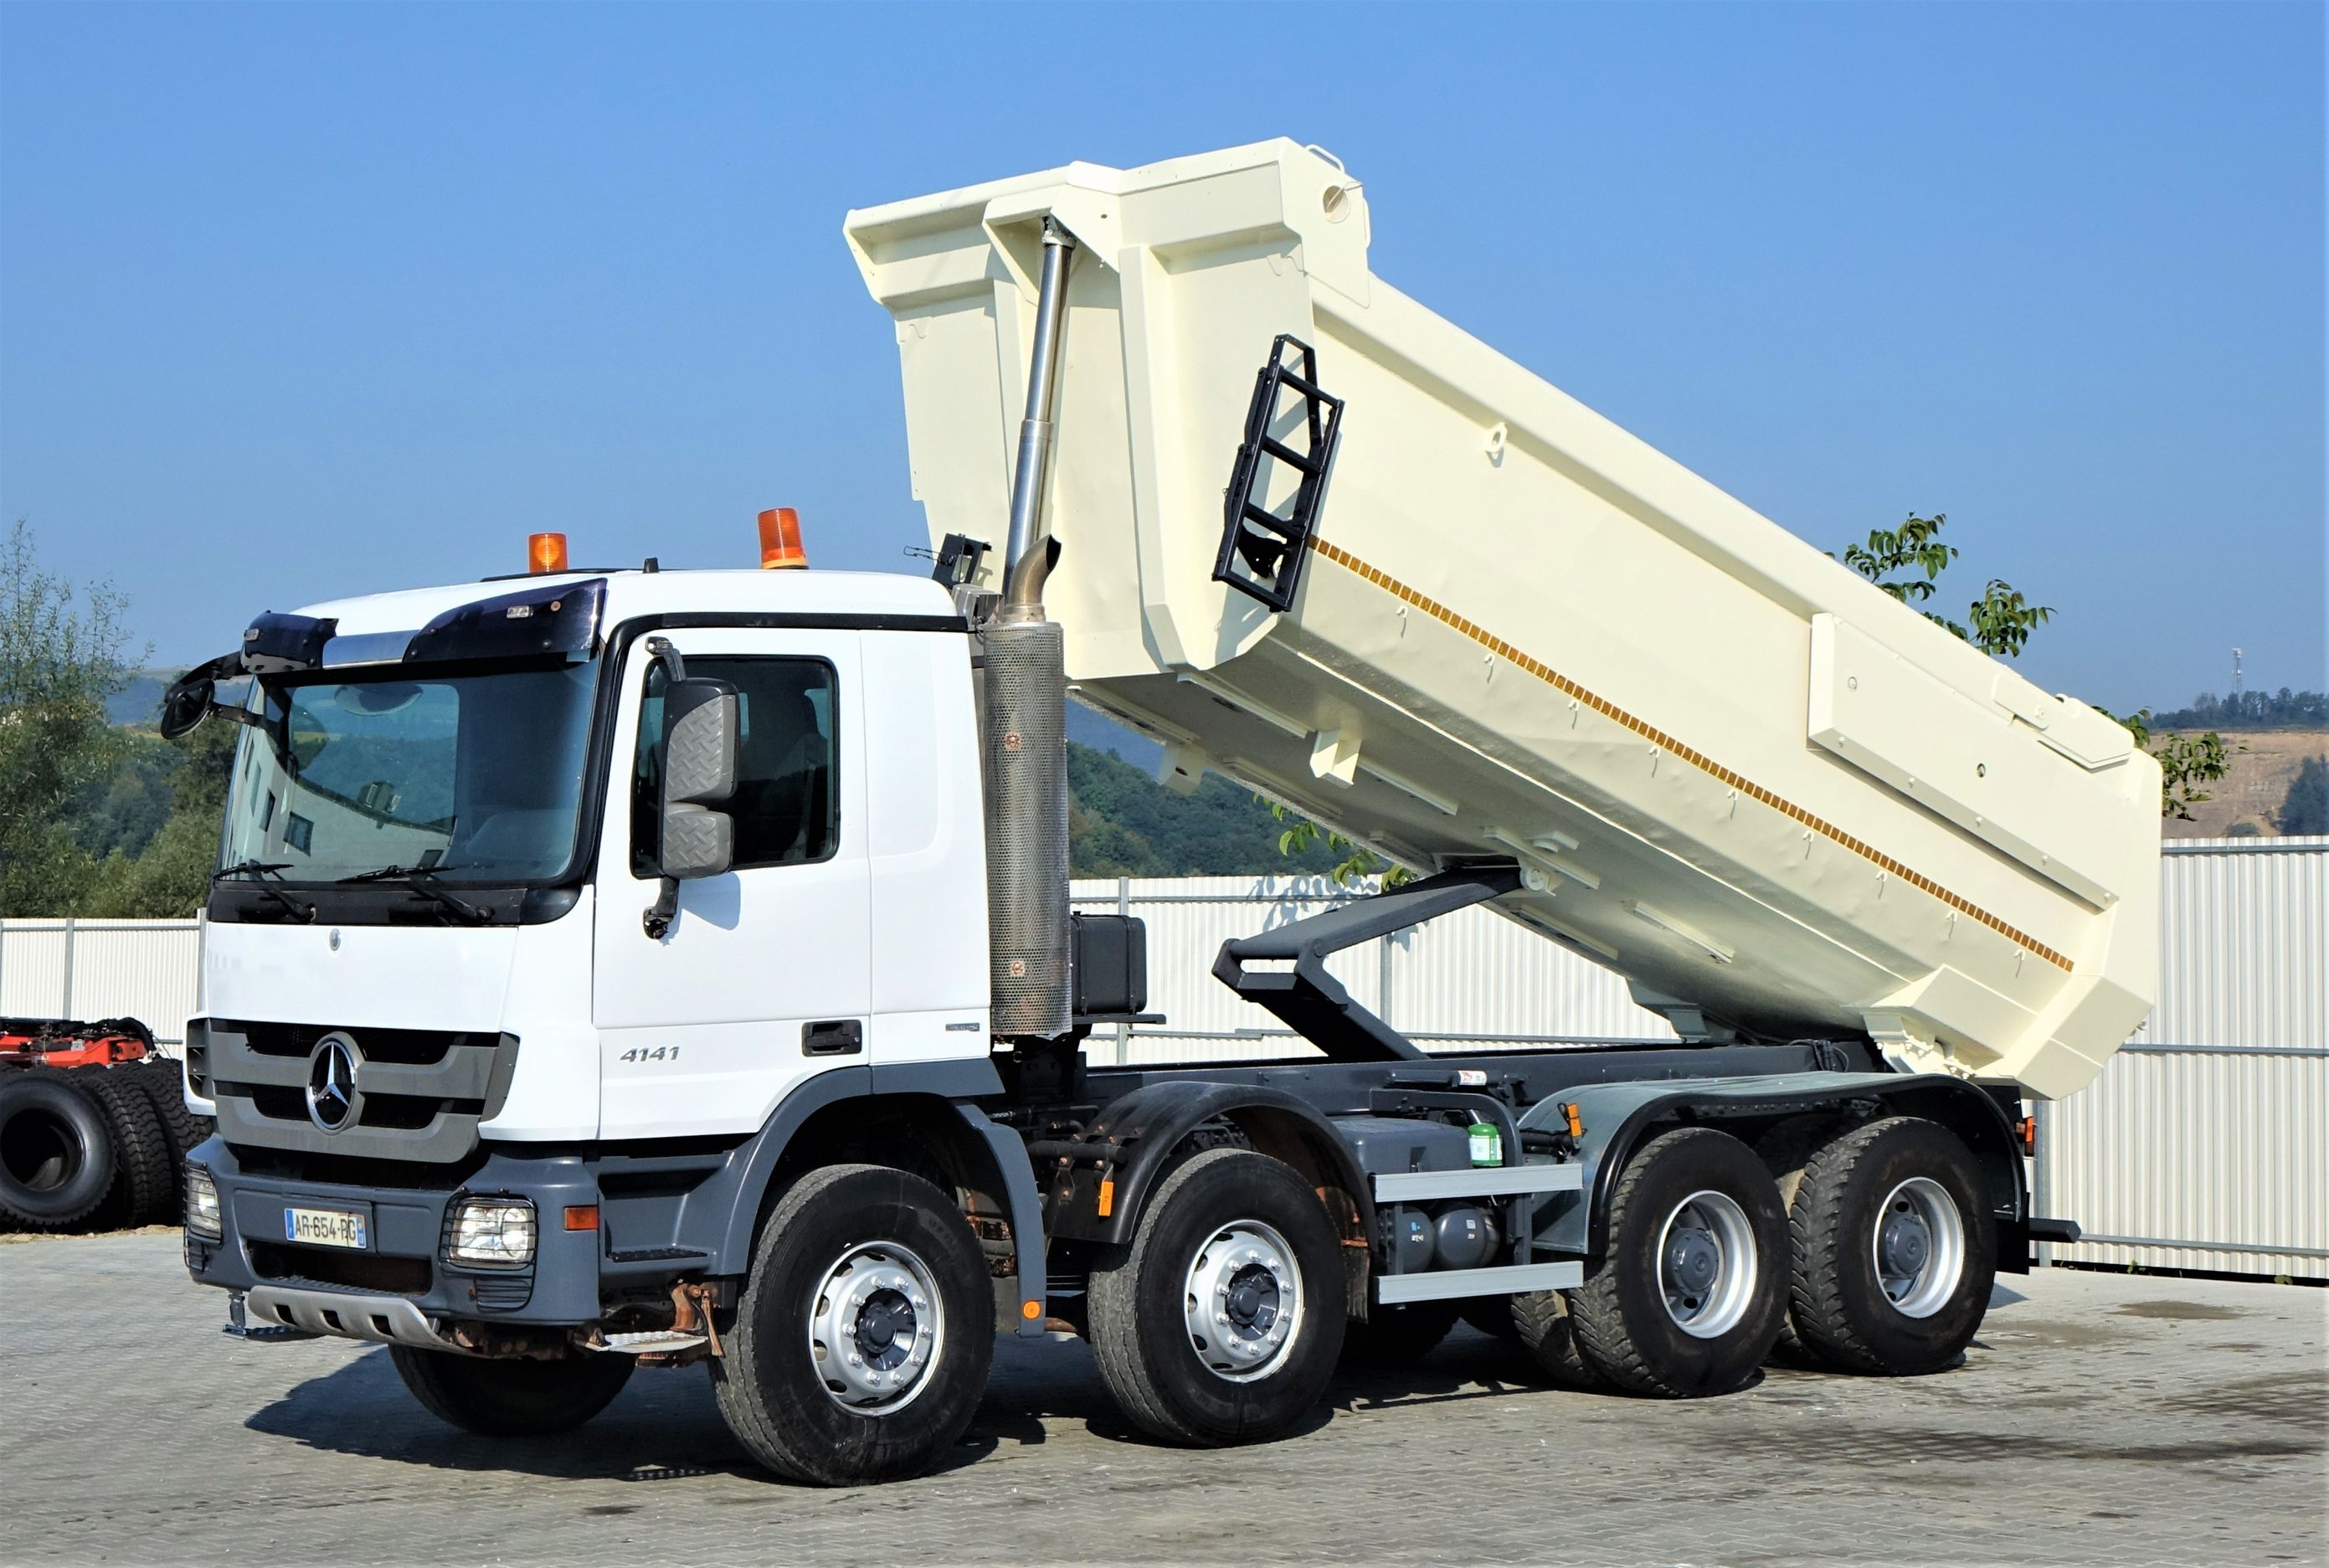 2011-mercedes-benz-actros-4141-321072-equipment-cover-image